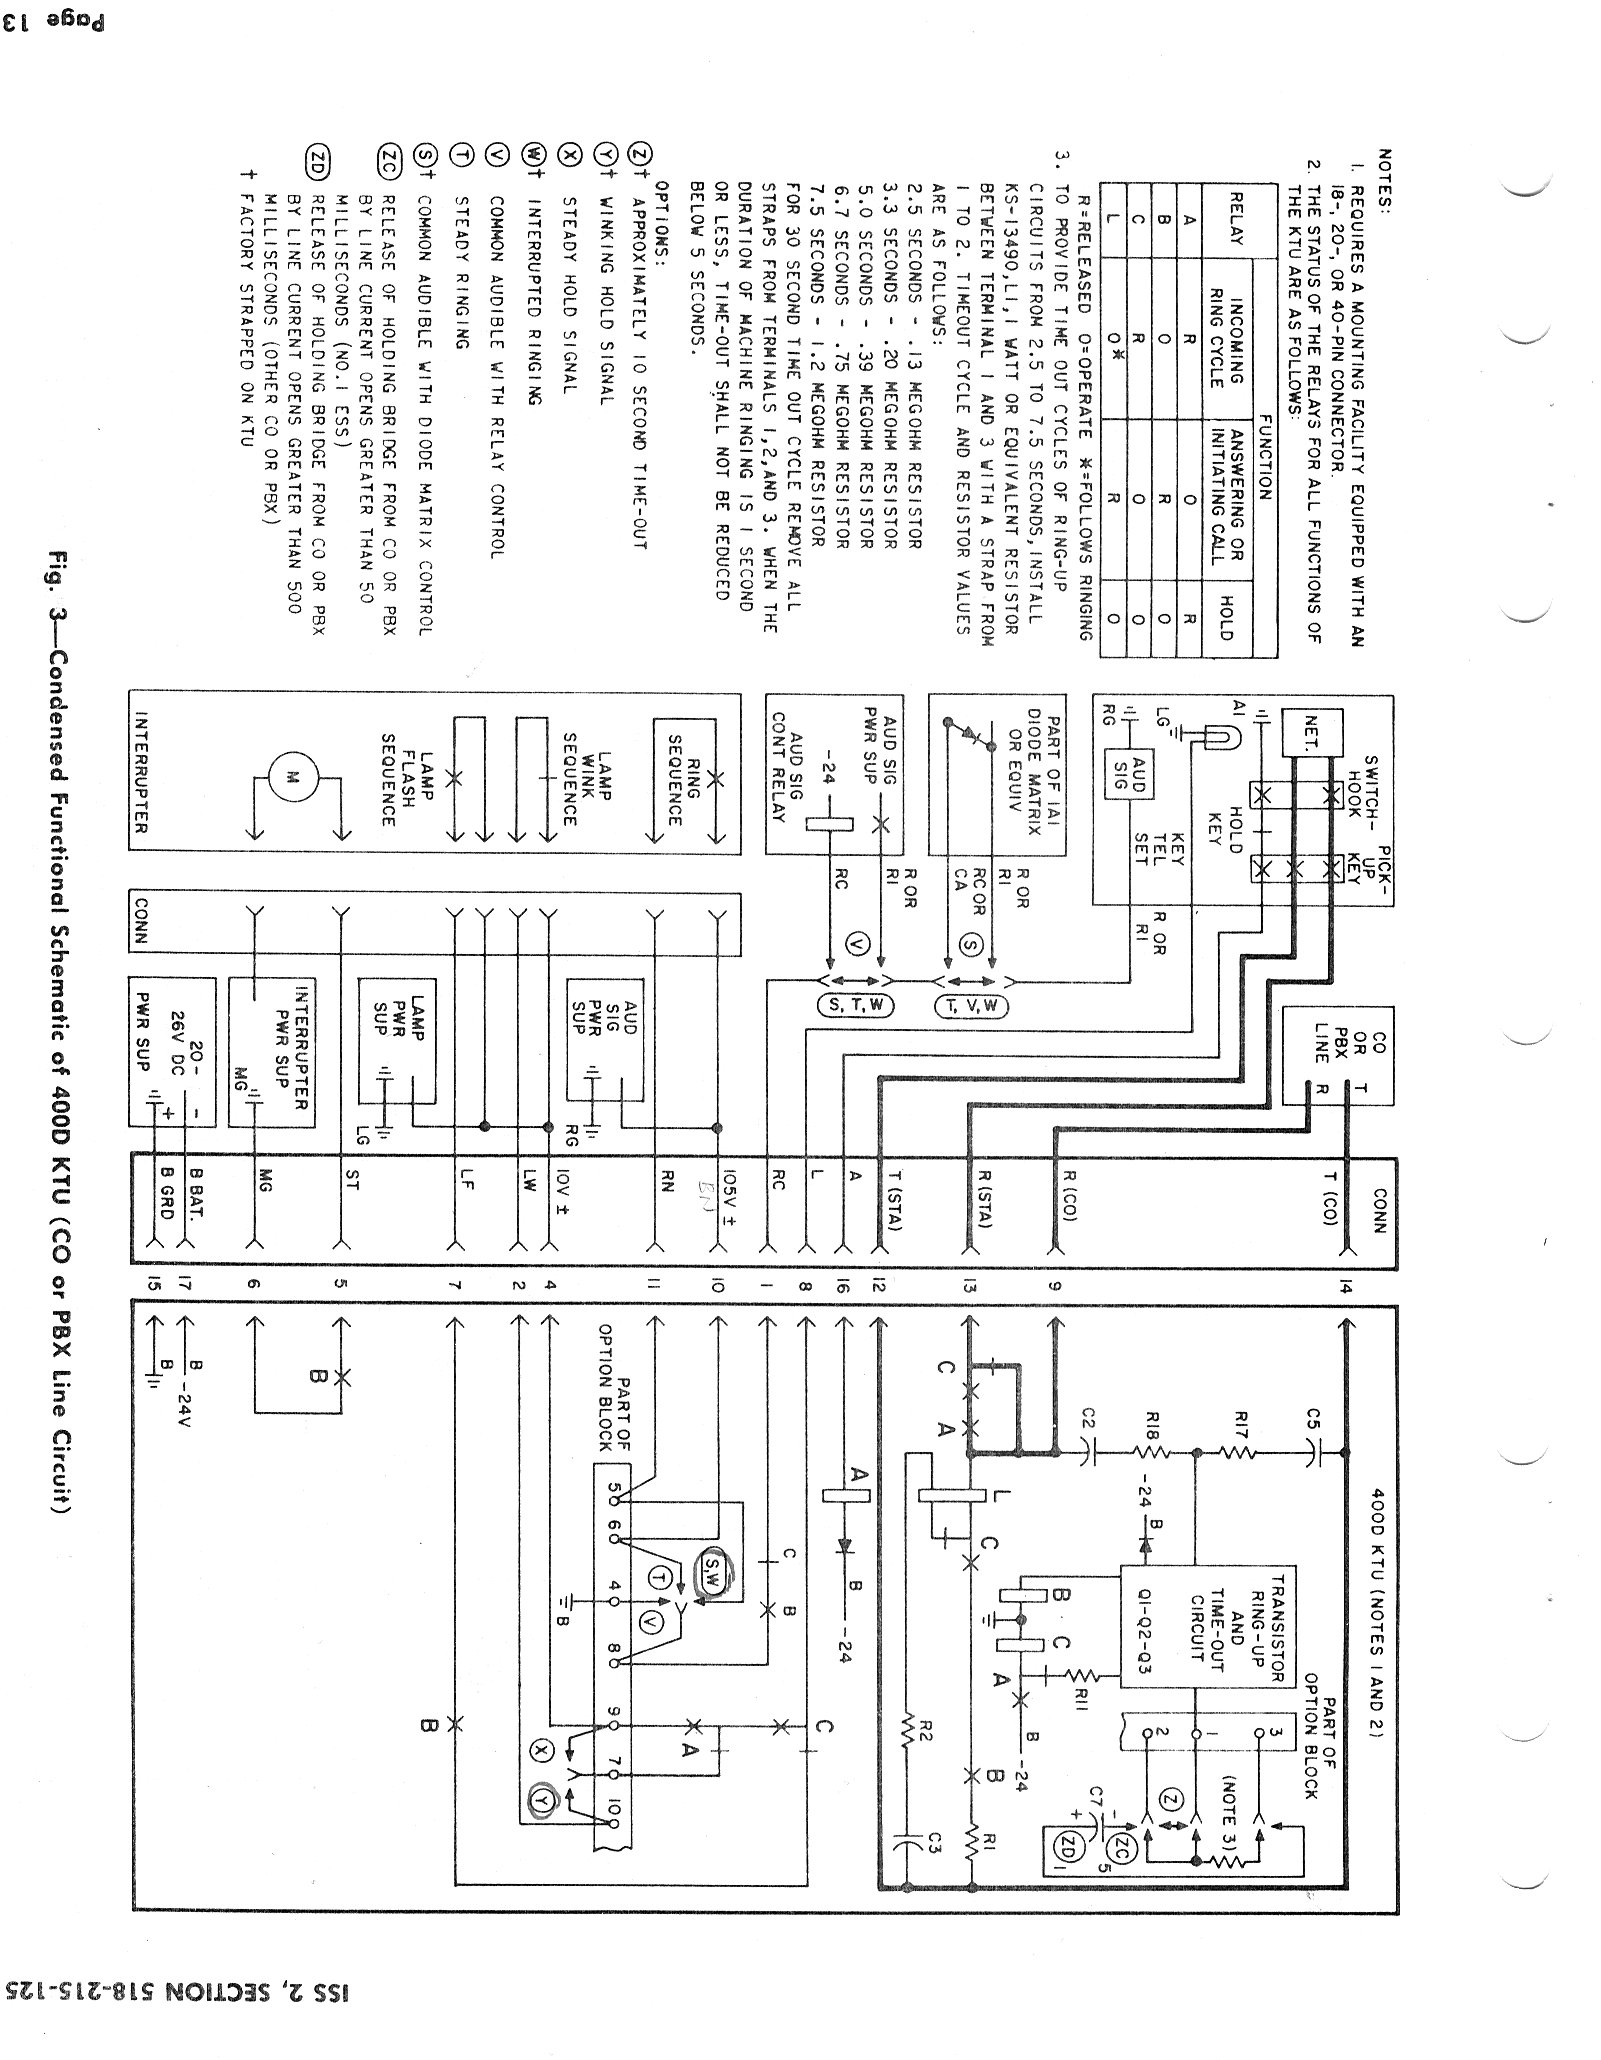 400d 1a2 key system explanation 2 line phone system wiring diagram at nearapp.co